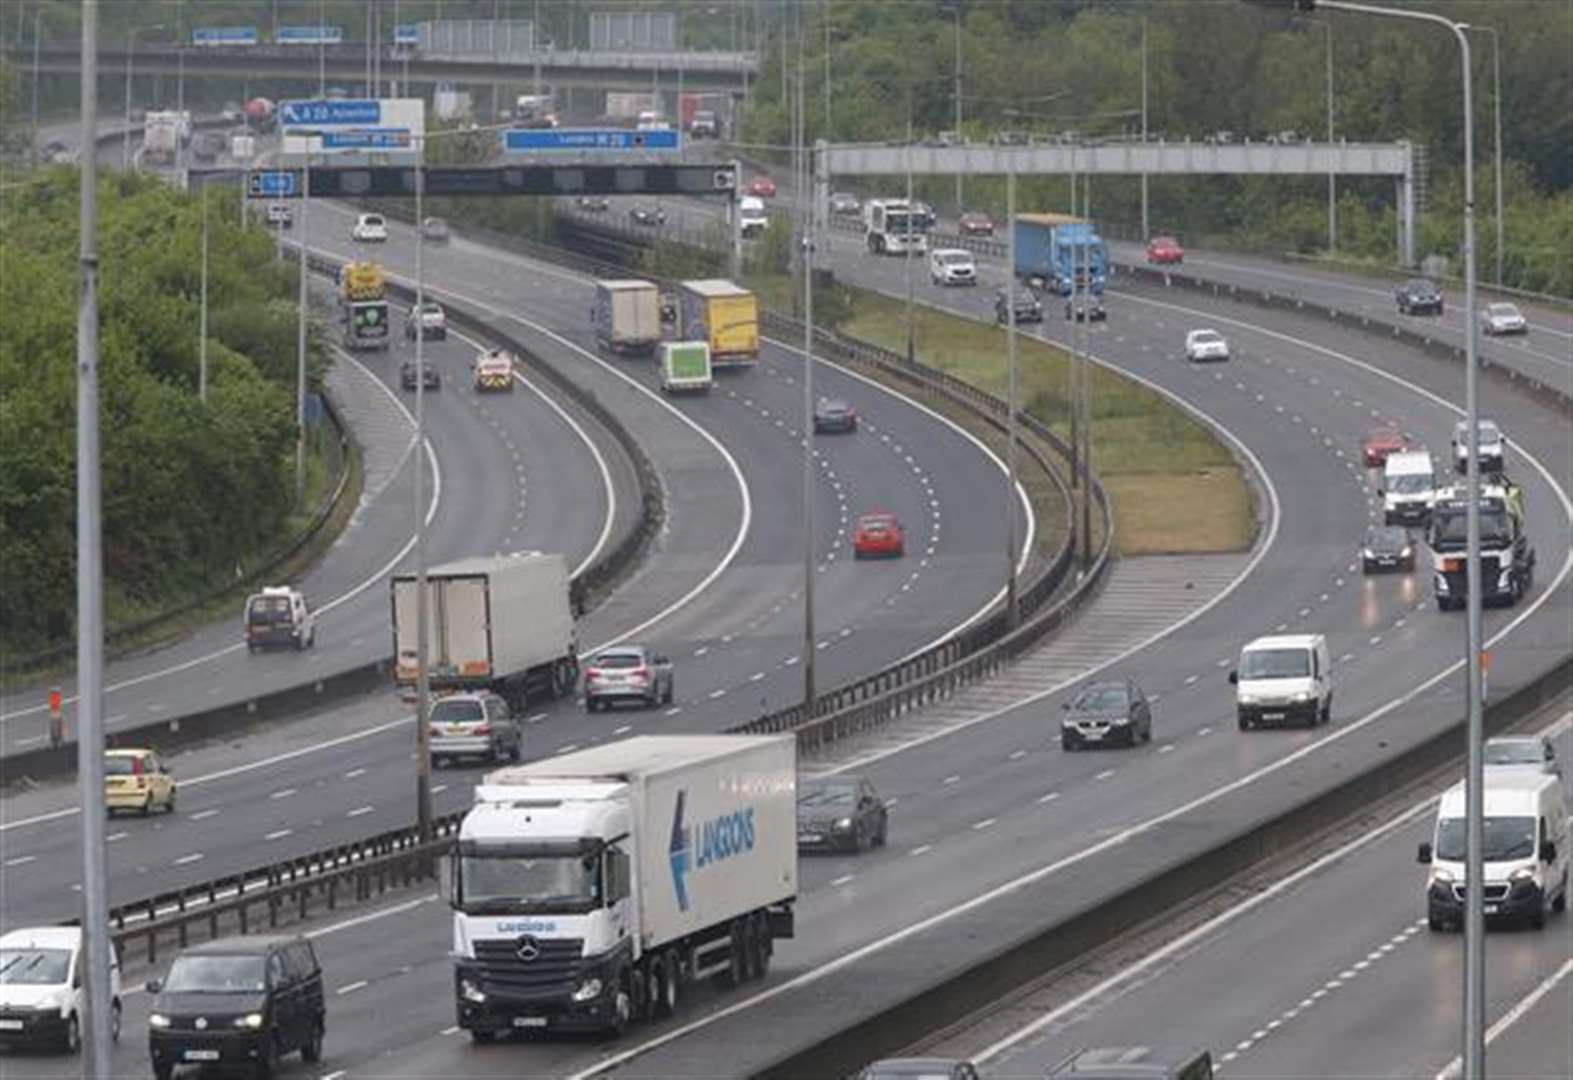 MPs demand action over motorway noise